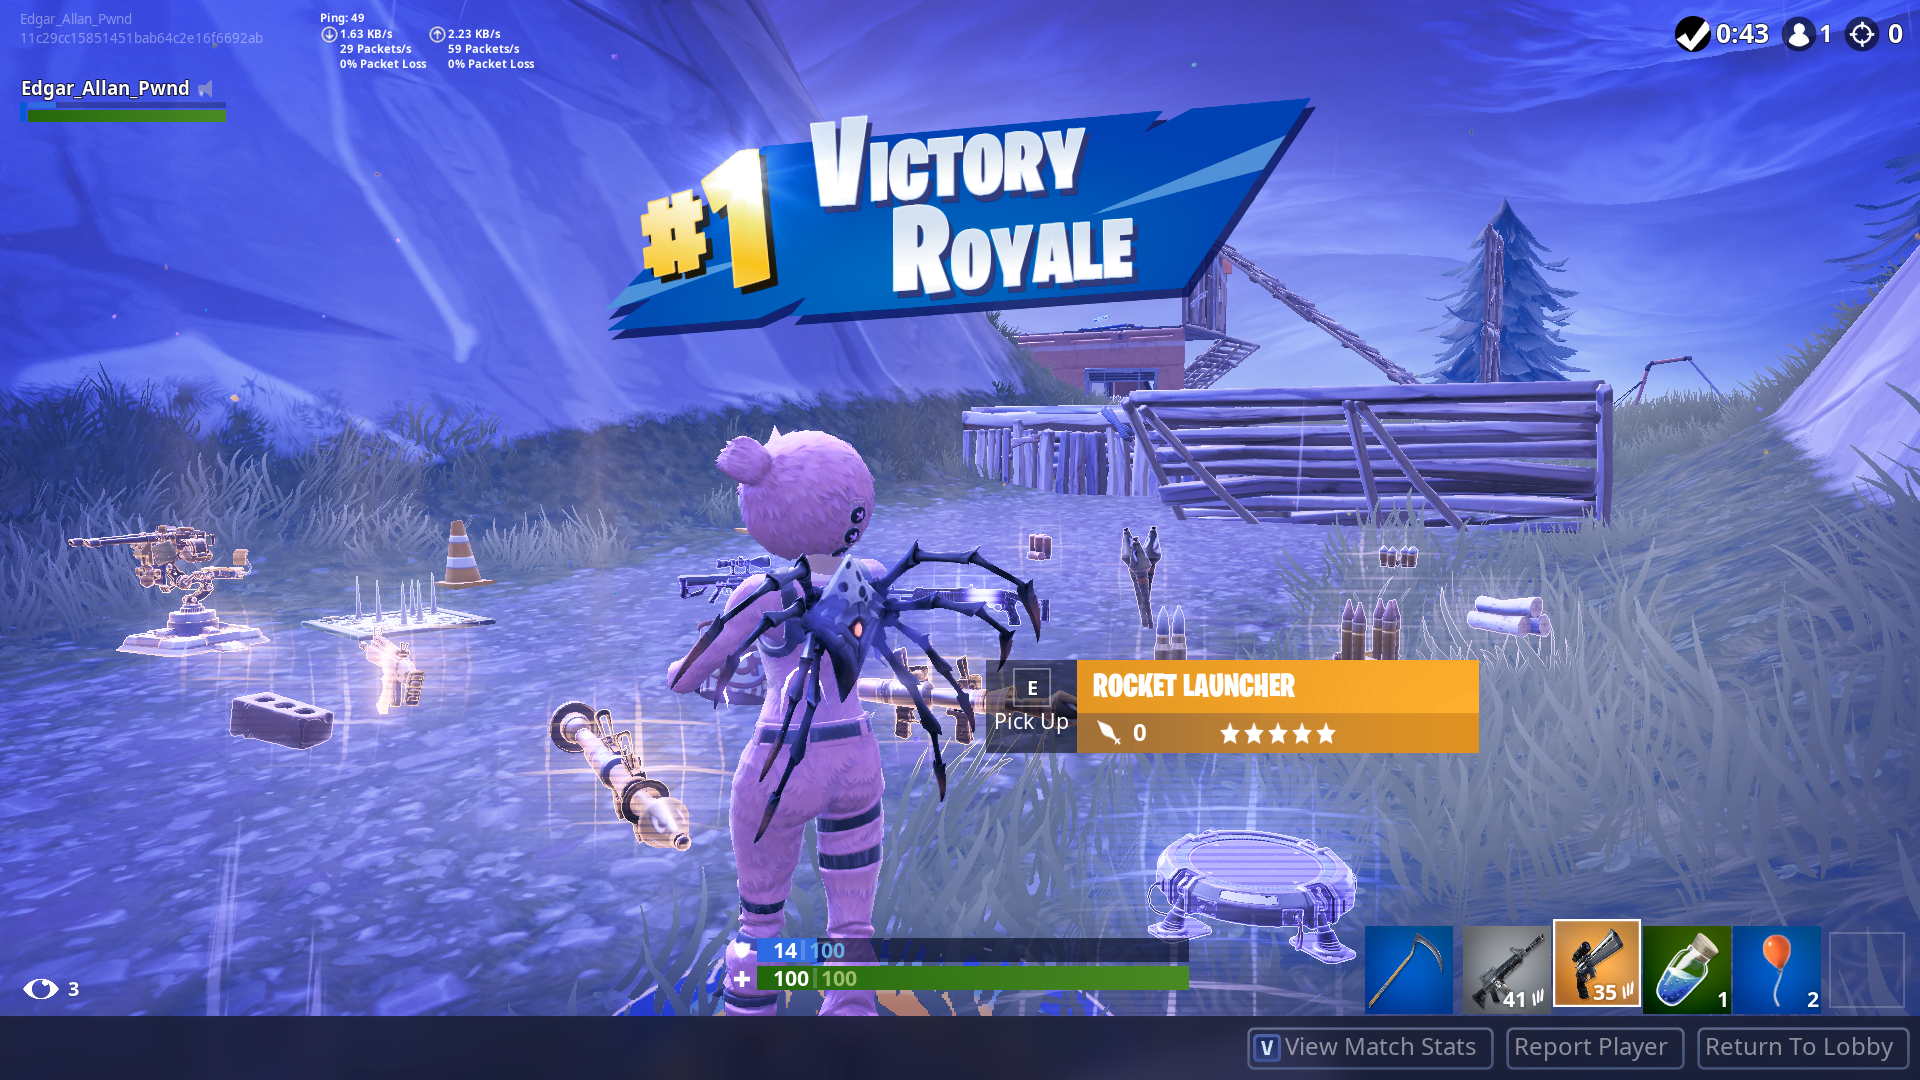 How to Win Fortnite Without Kills